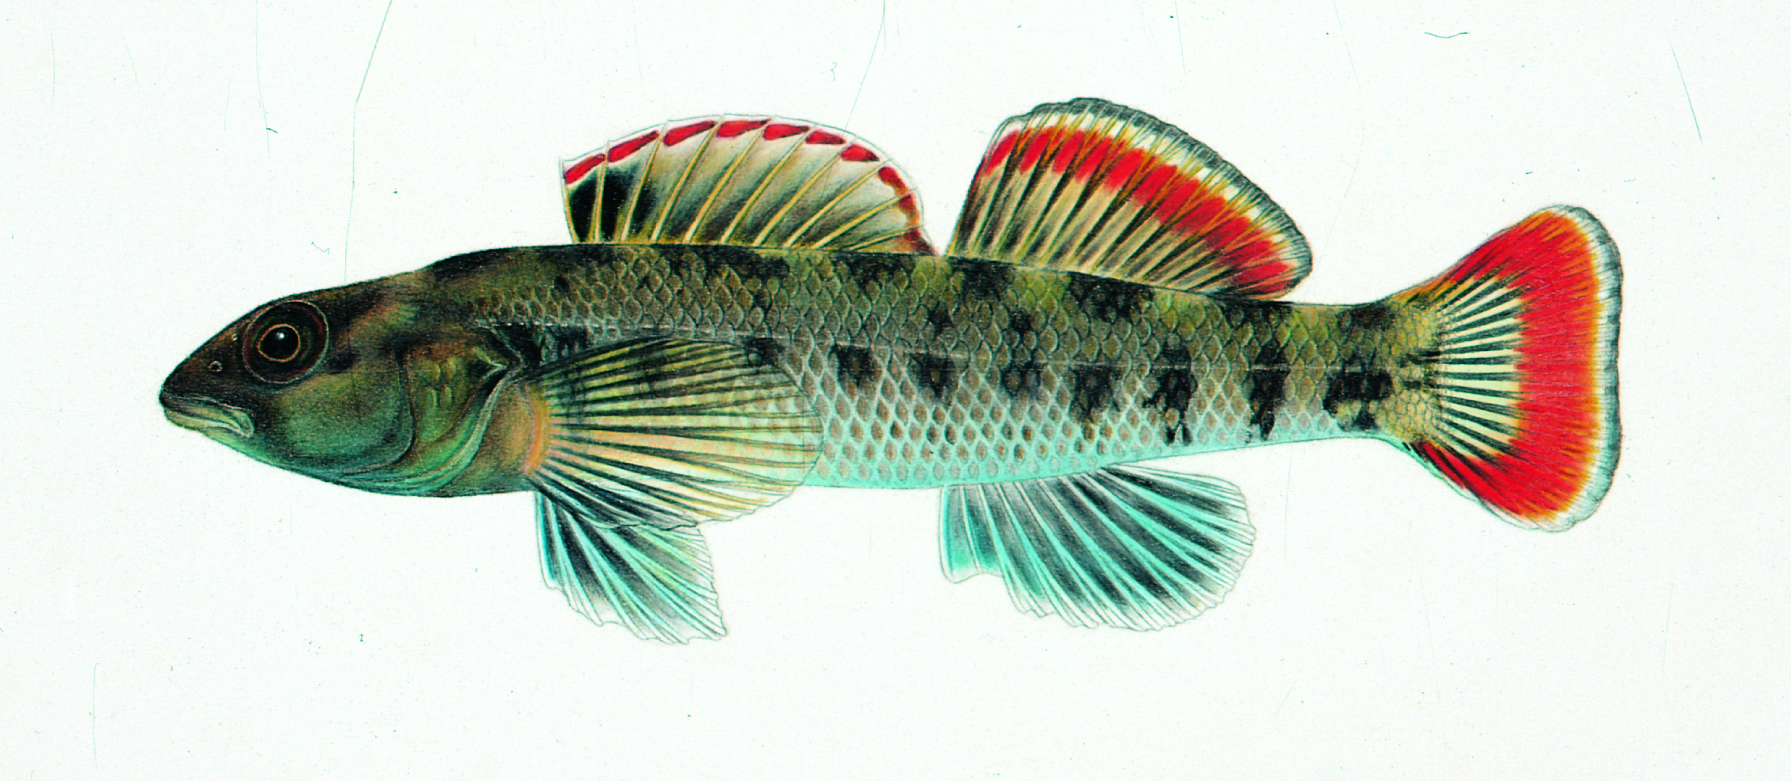 etheostoma etowahae